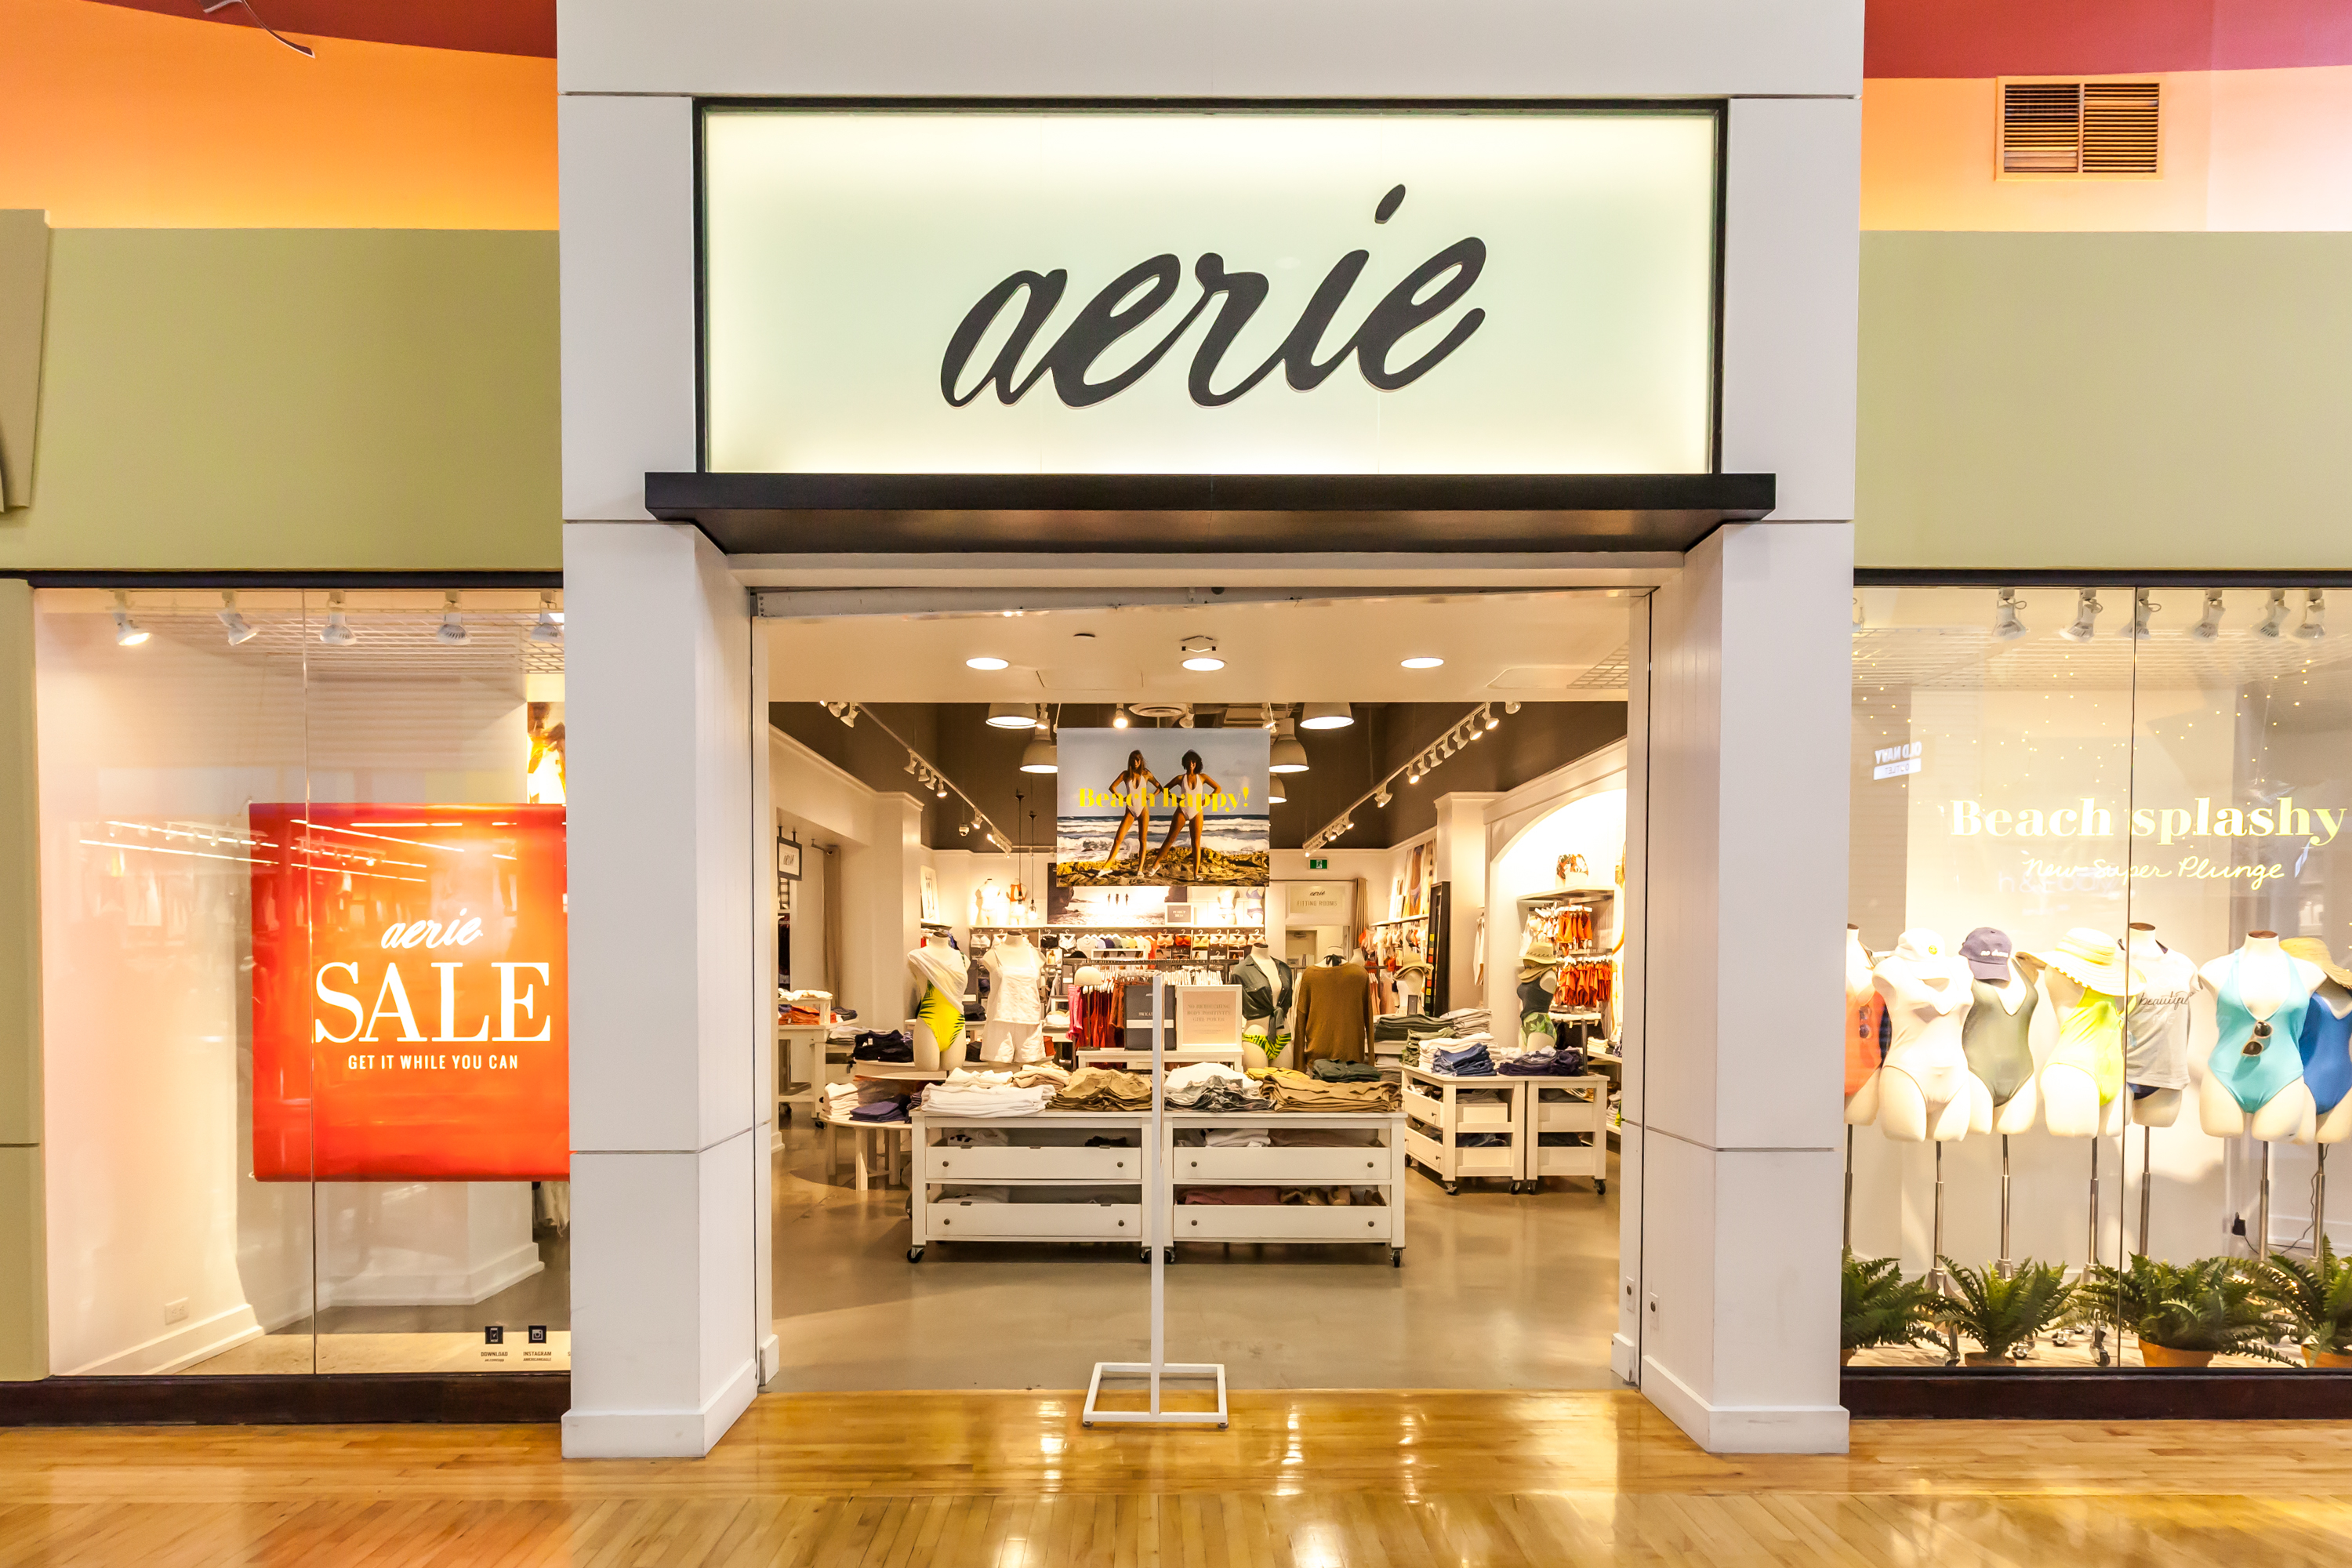 competitor analysis aerie